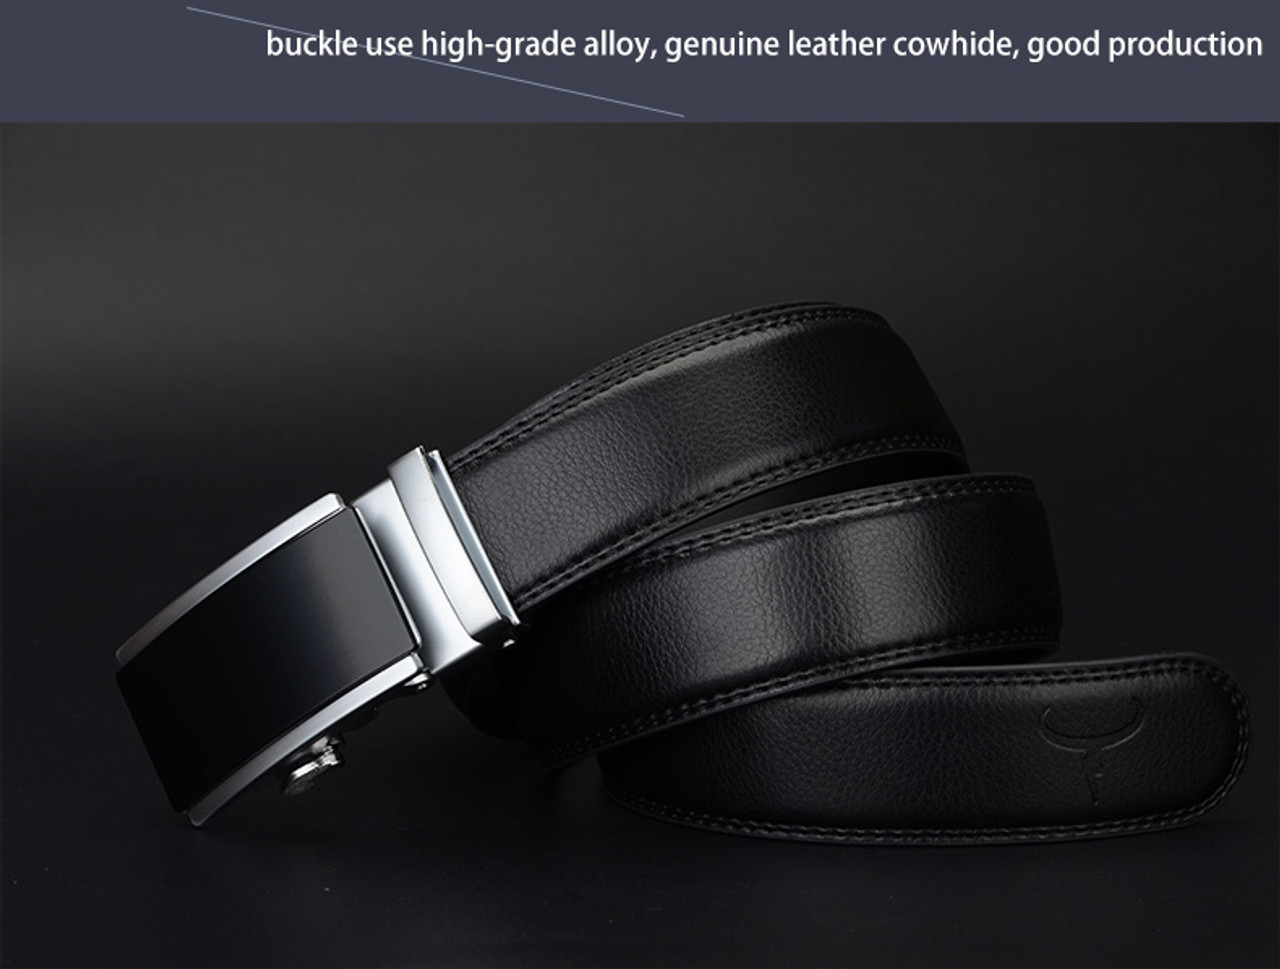 Cowather Vintage Cow Genuine Leather Belts For Men Cowhide Male Strap Automatic Metal Buckle High Quality Men Belts 110-130cm Factory Direct Selling Price Men's Belts